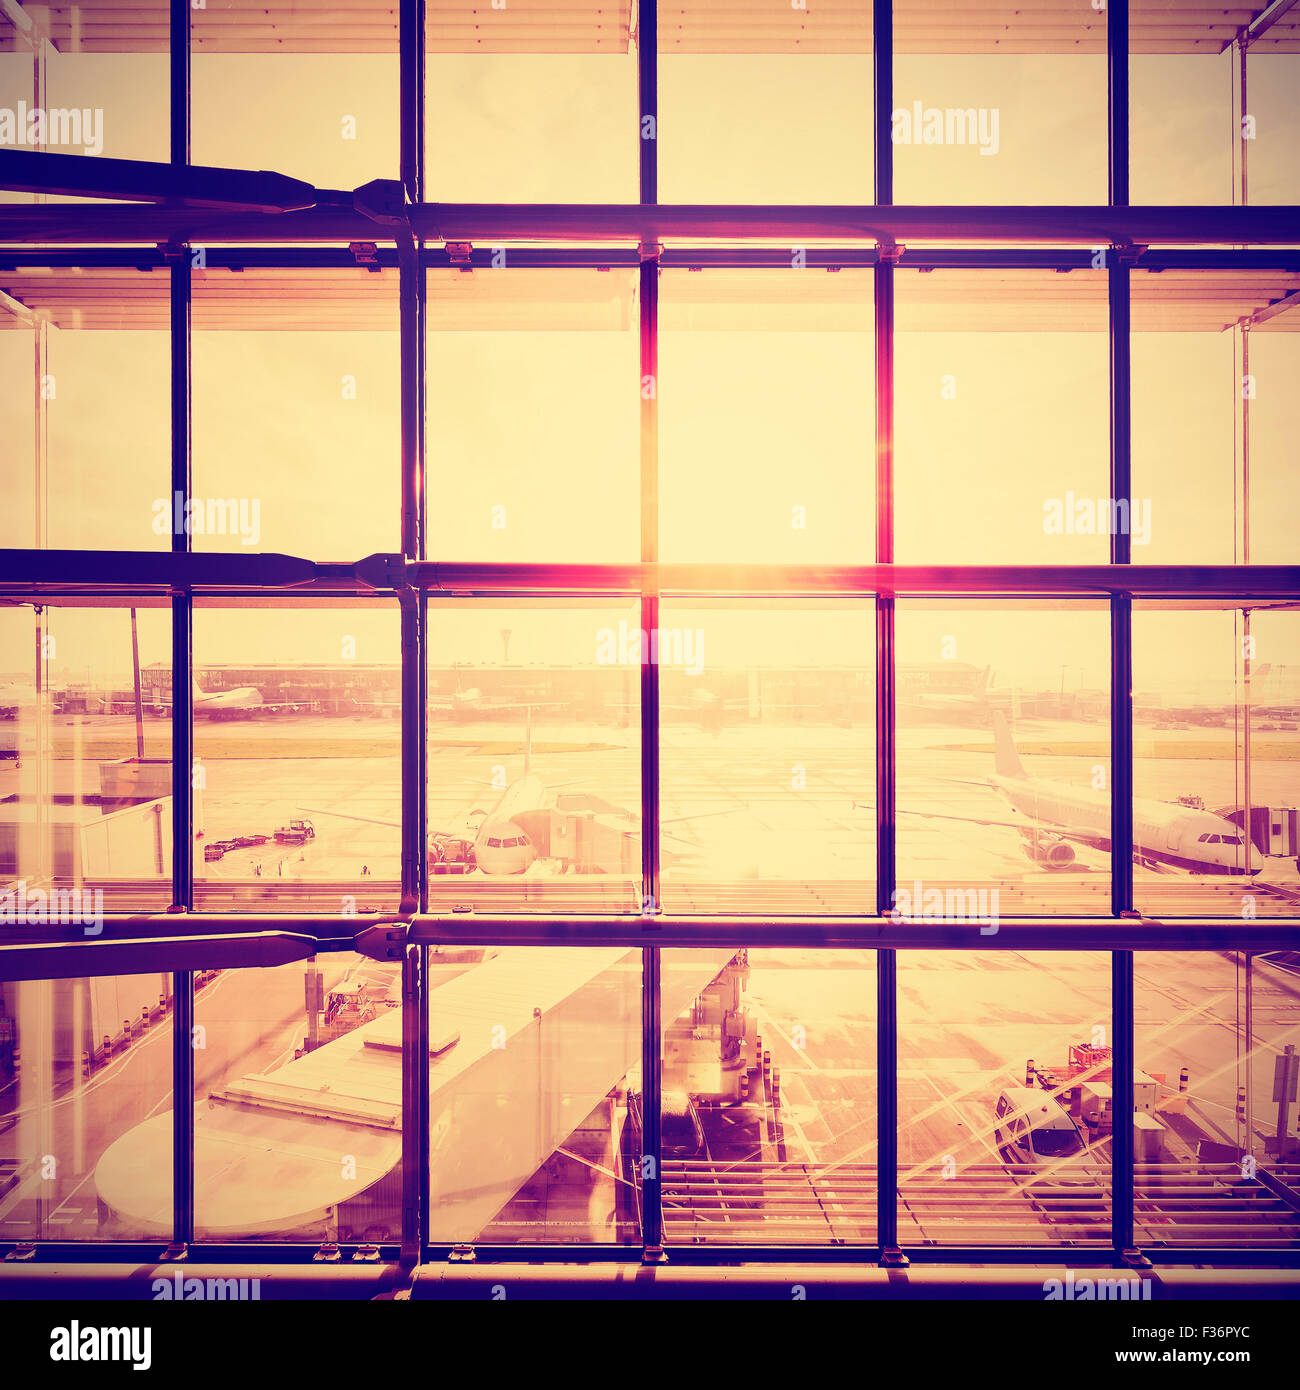 Instagram stylized picture of an airport, transportation and business travel concept. - Stock Image